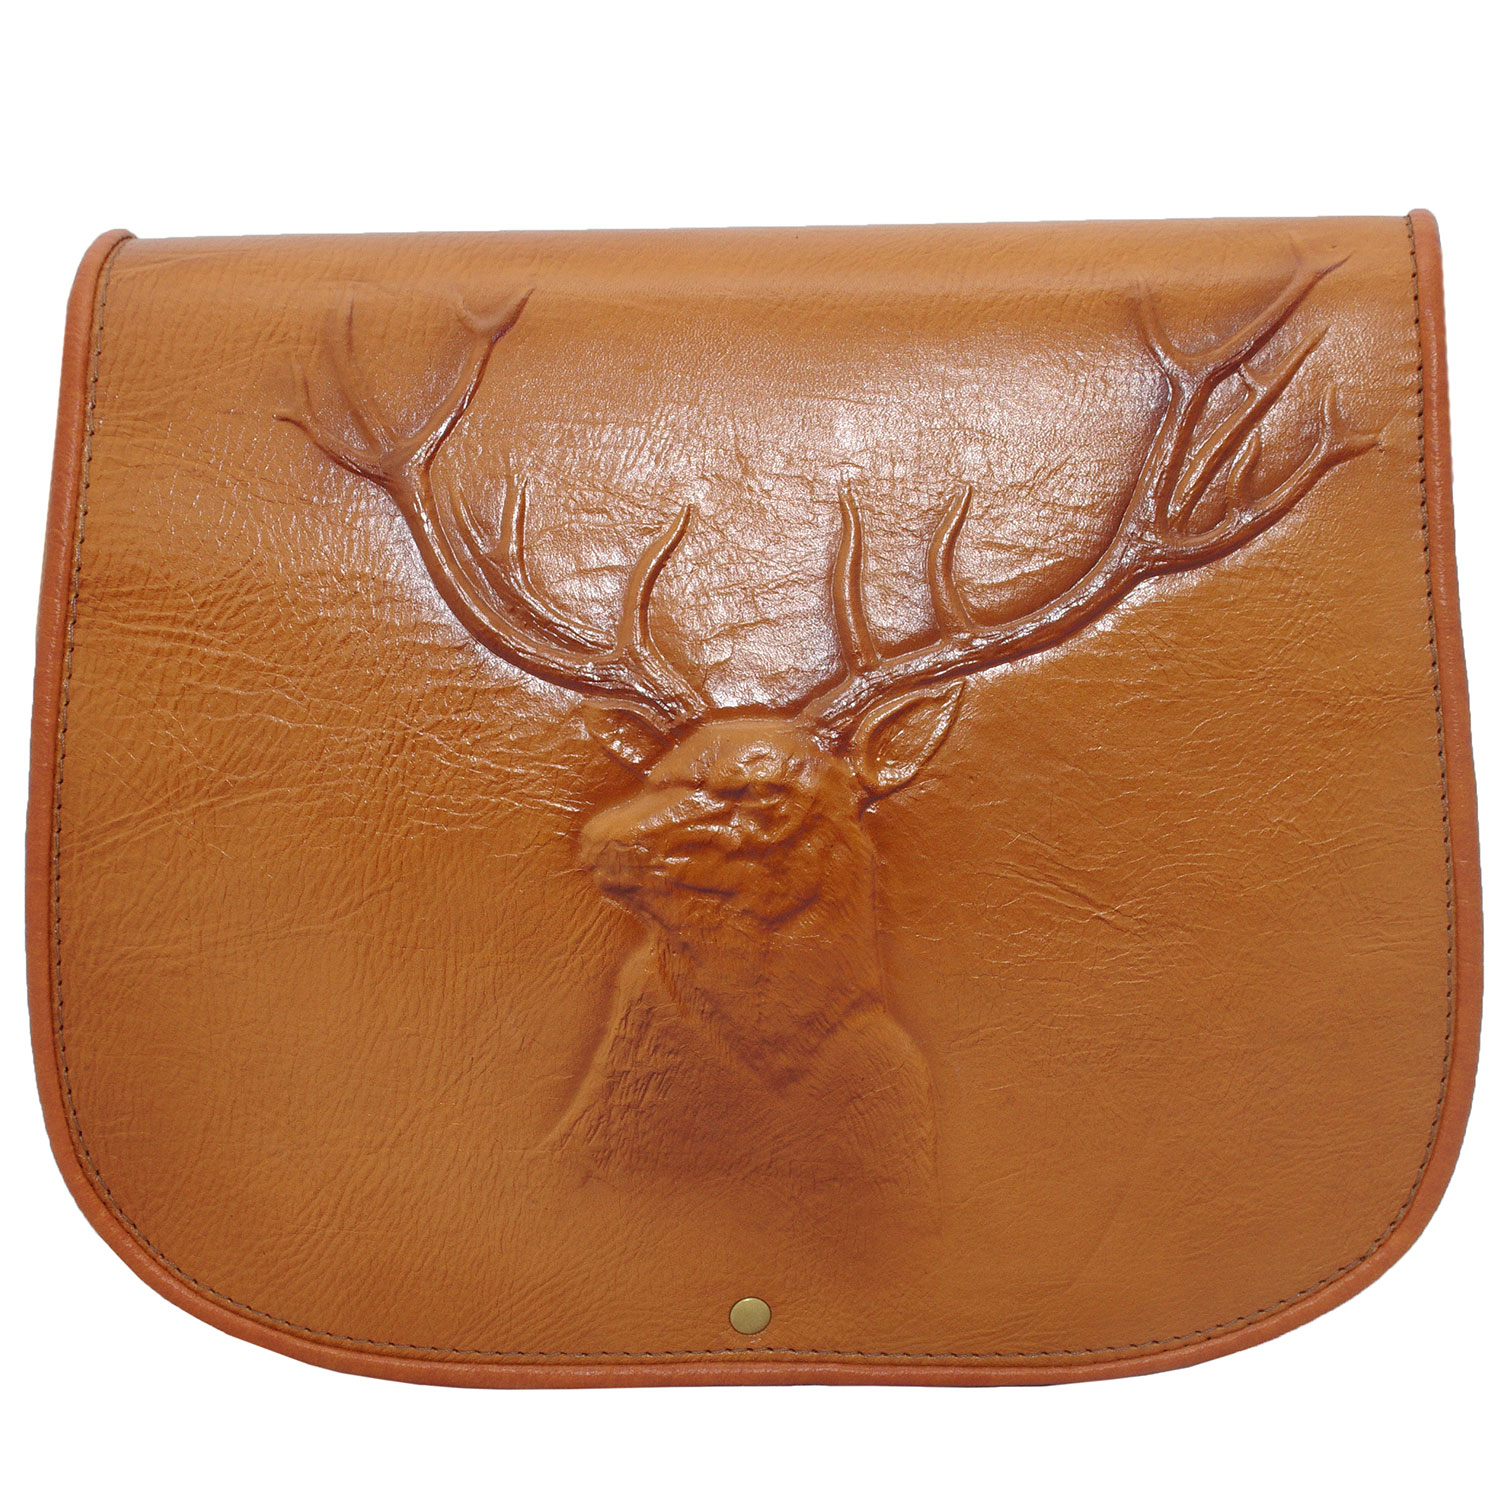 raindeer-shoulder-handbag-crossbody-satchel-genuine-leather